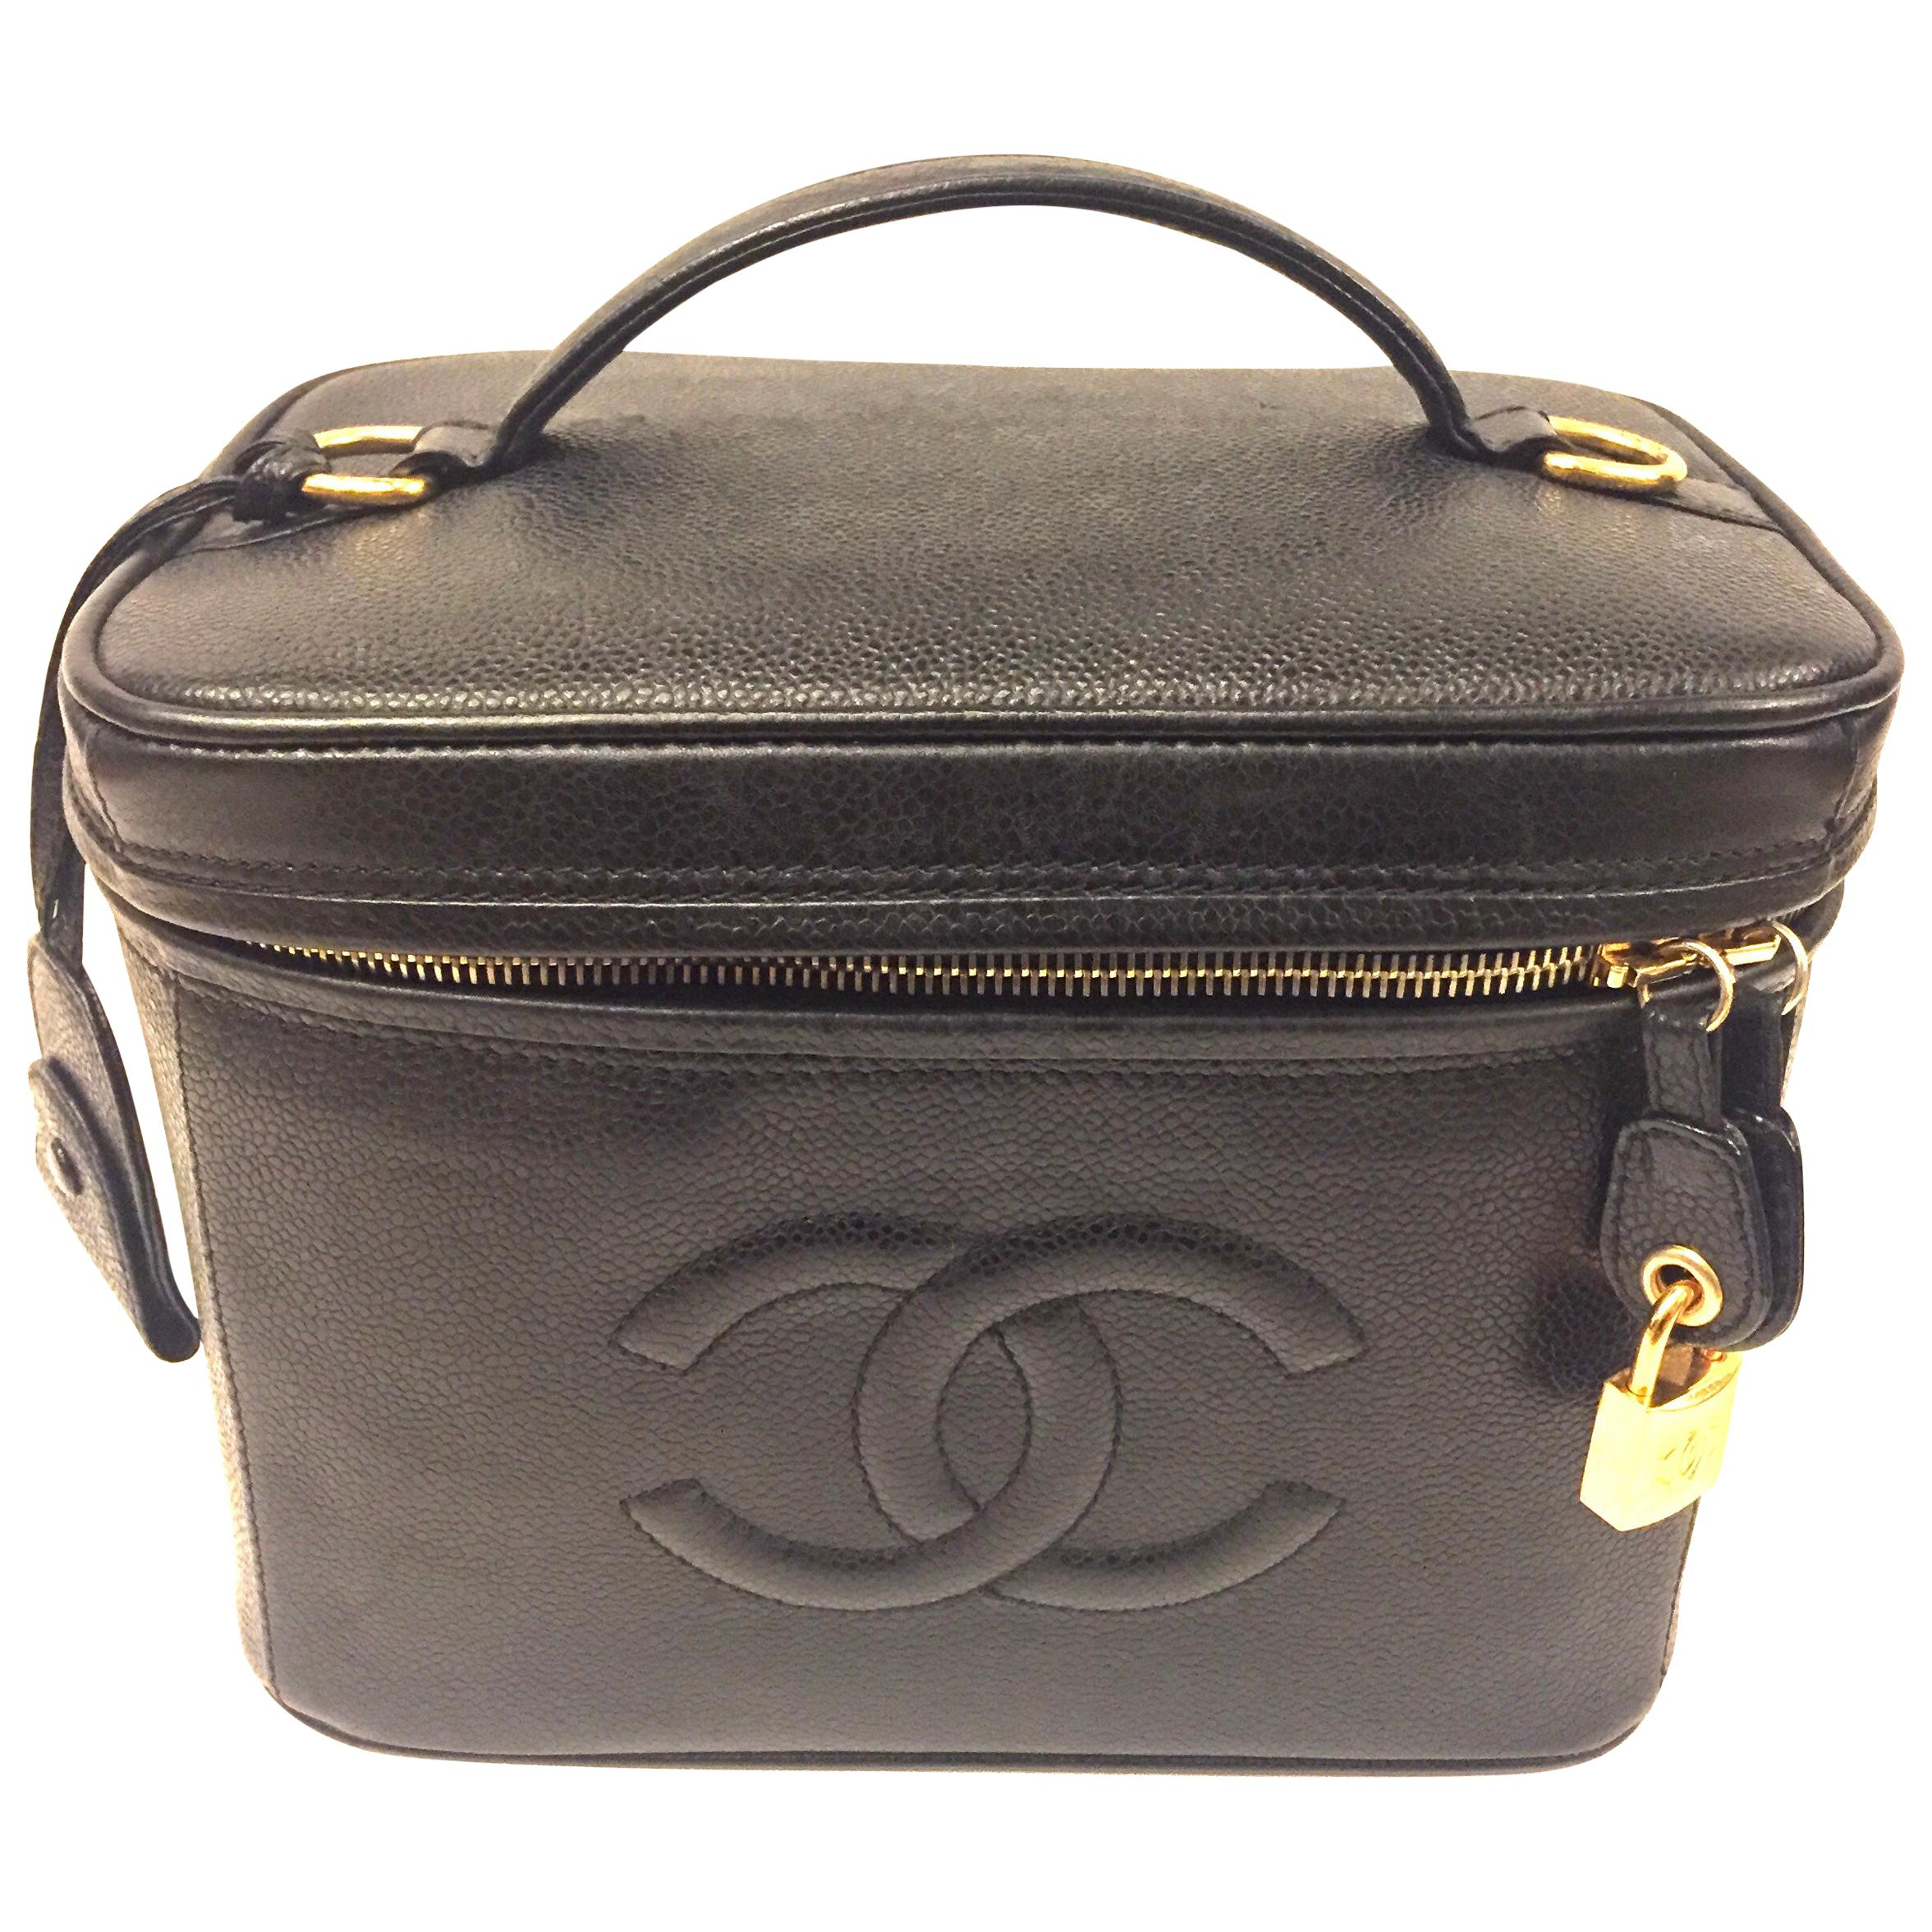 "Chanel ""CC""  Black Caviar Vanity Bag"